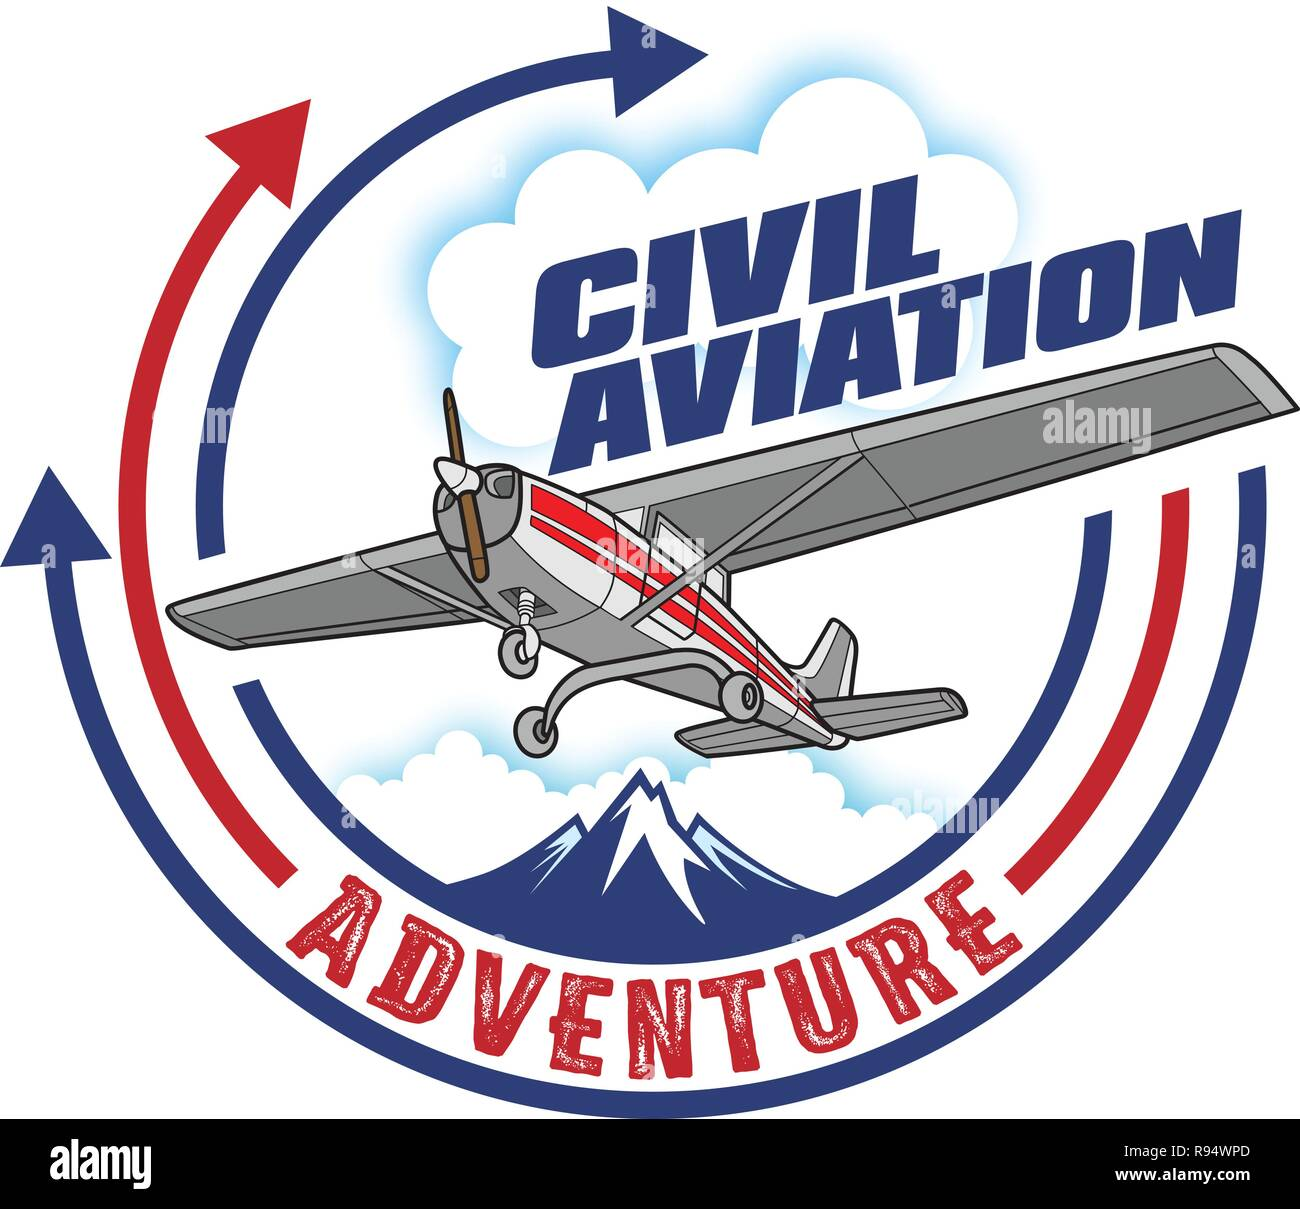 Civil Aviation icon, label design - Stock Image